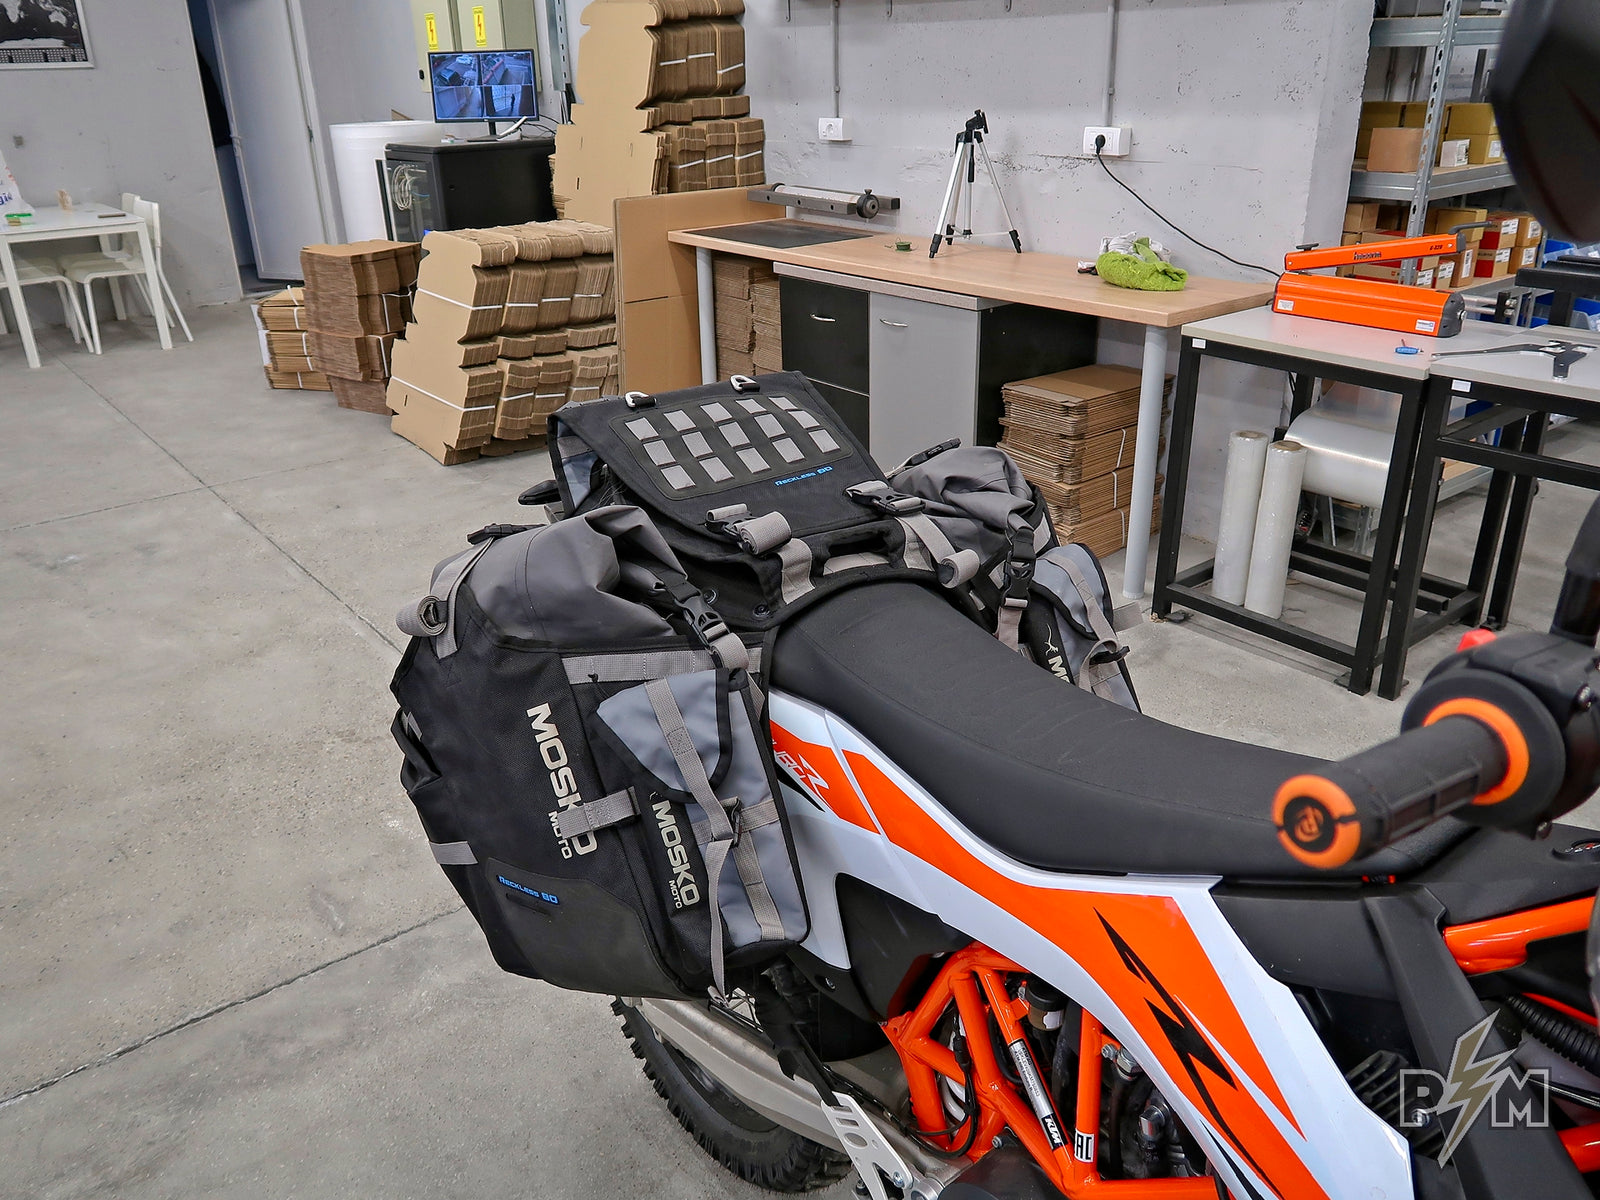 2019+ KTM 690 Enduro Lugagge rack and Mosko moto Reckless 80